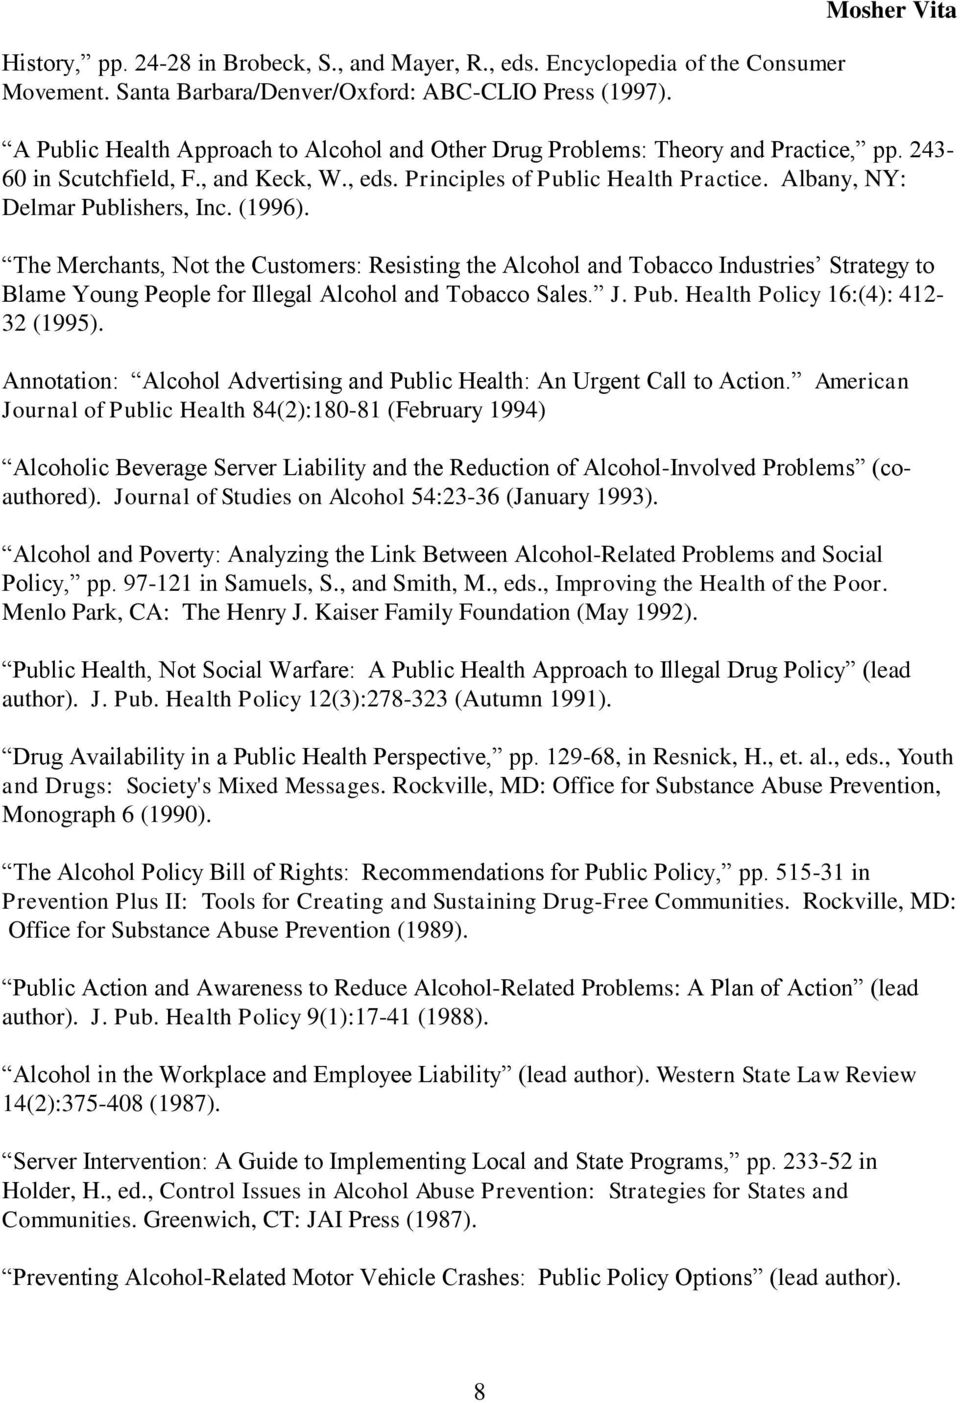 Albany, NY: Delmar Publishers, Inc. (1996). The Merchants, Not the Customers: Resisting the Alcohol and Tobacco Industries Strategy to Blame Young People for Illegal Alcohol and Tobacco Sales. J. Pub. Health Policy 16:(4): 412-32 (1995).